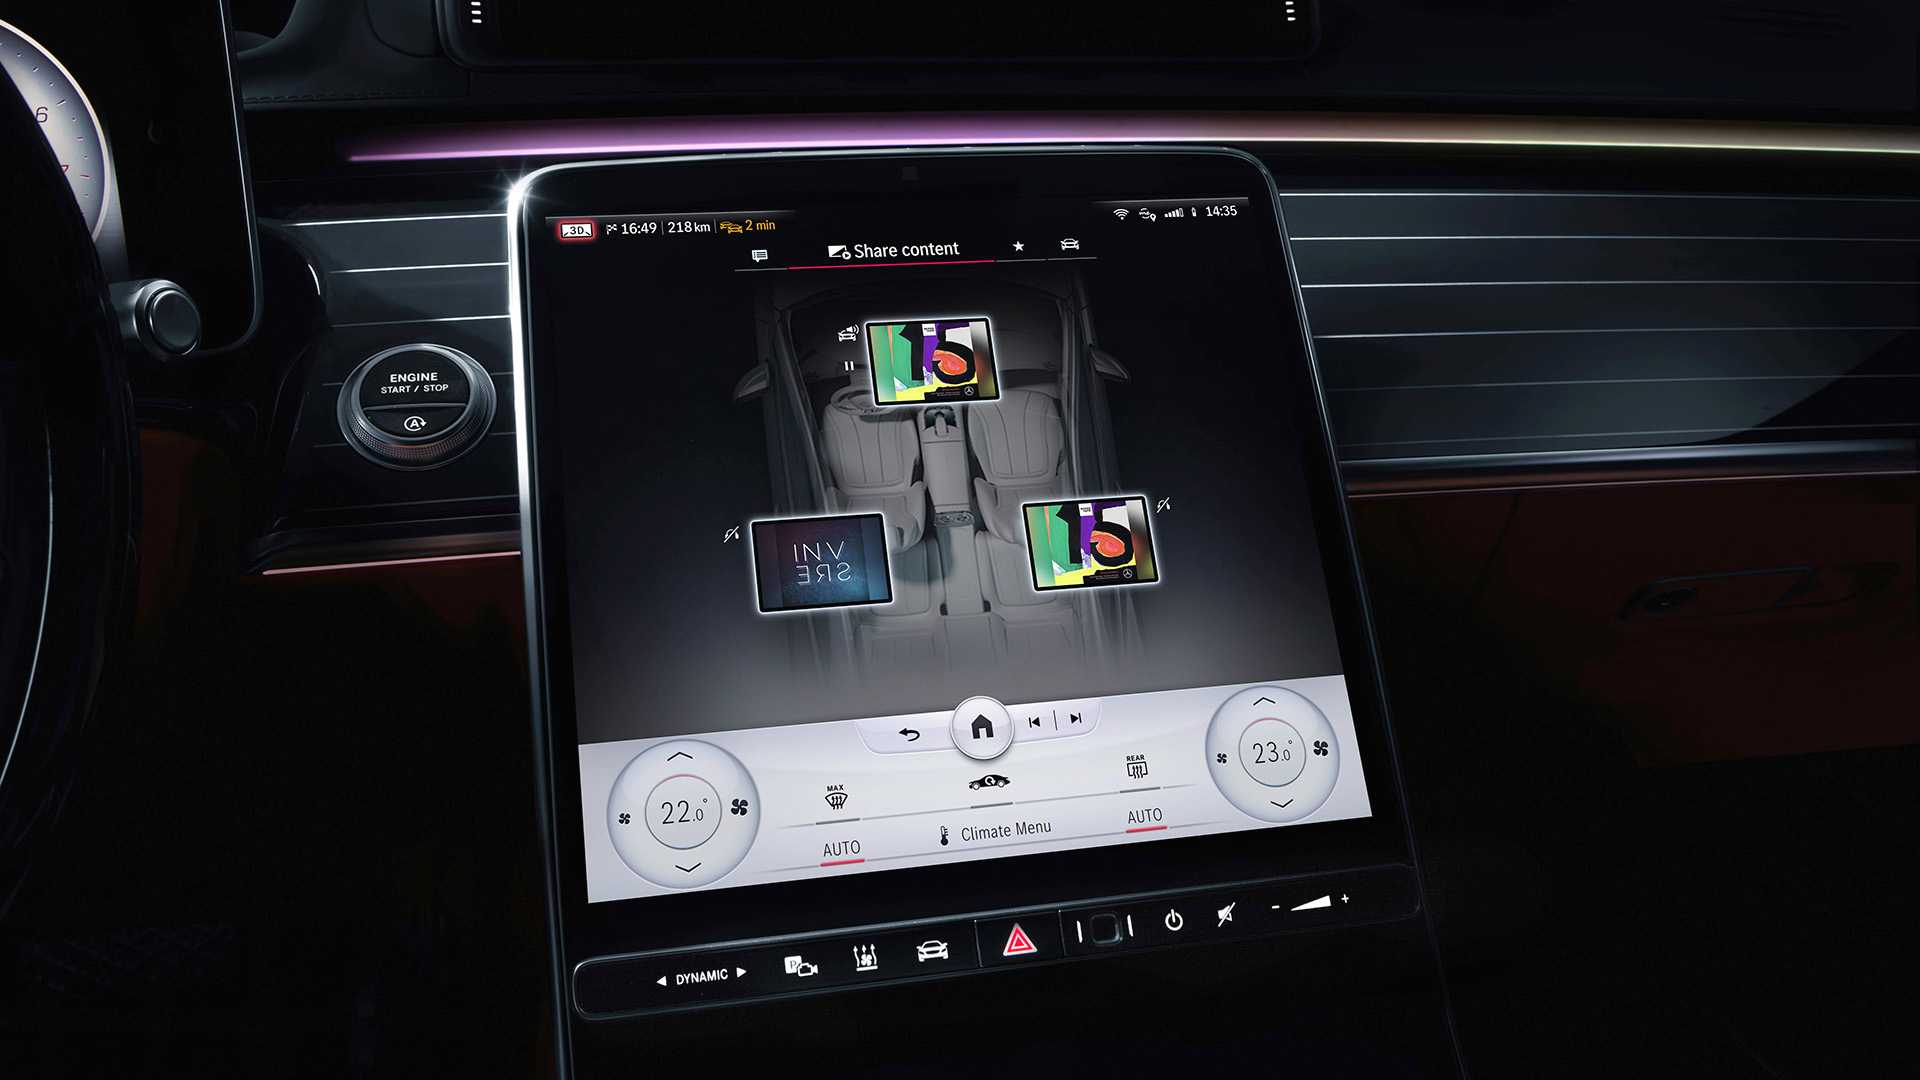 The luxury-laden Mercedes-Benz S-Class will be the first to take advantage of the company's second-gen MBUX infotainment system assisted by machine learning. Let us delve into the details.